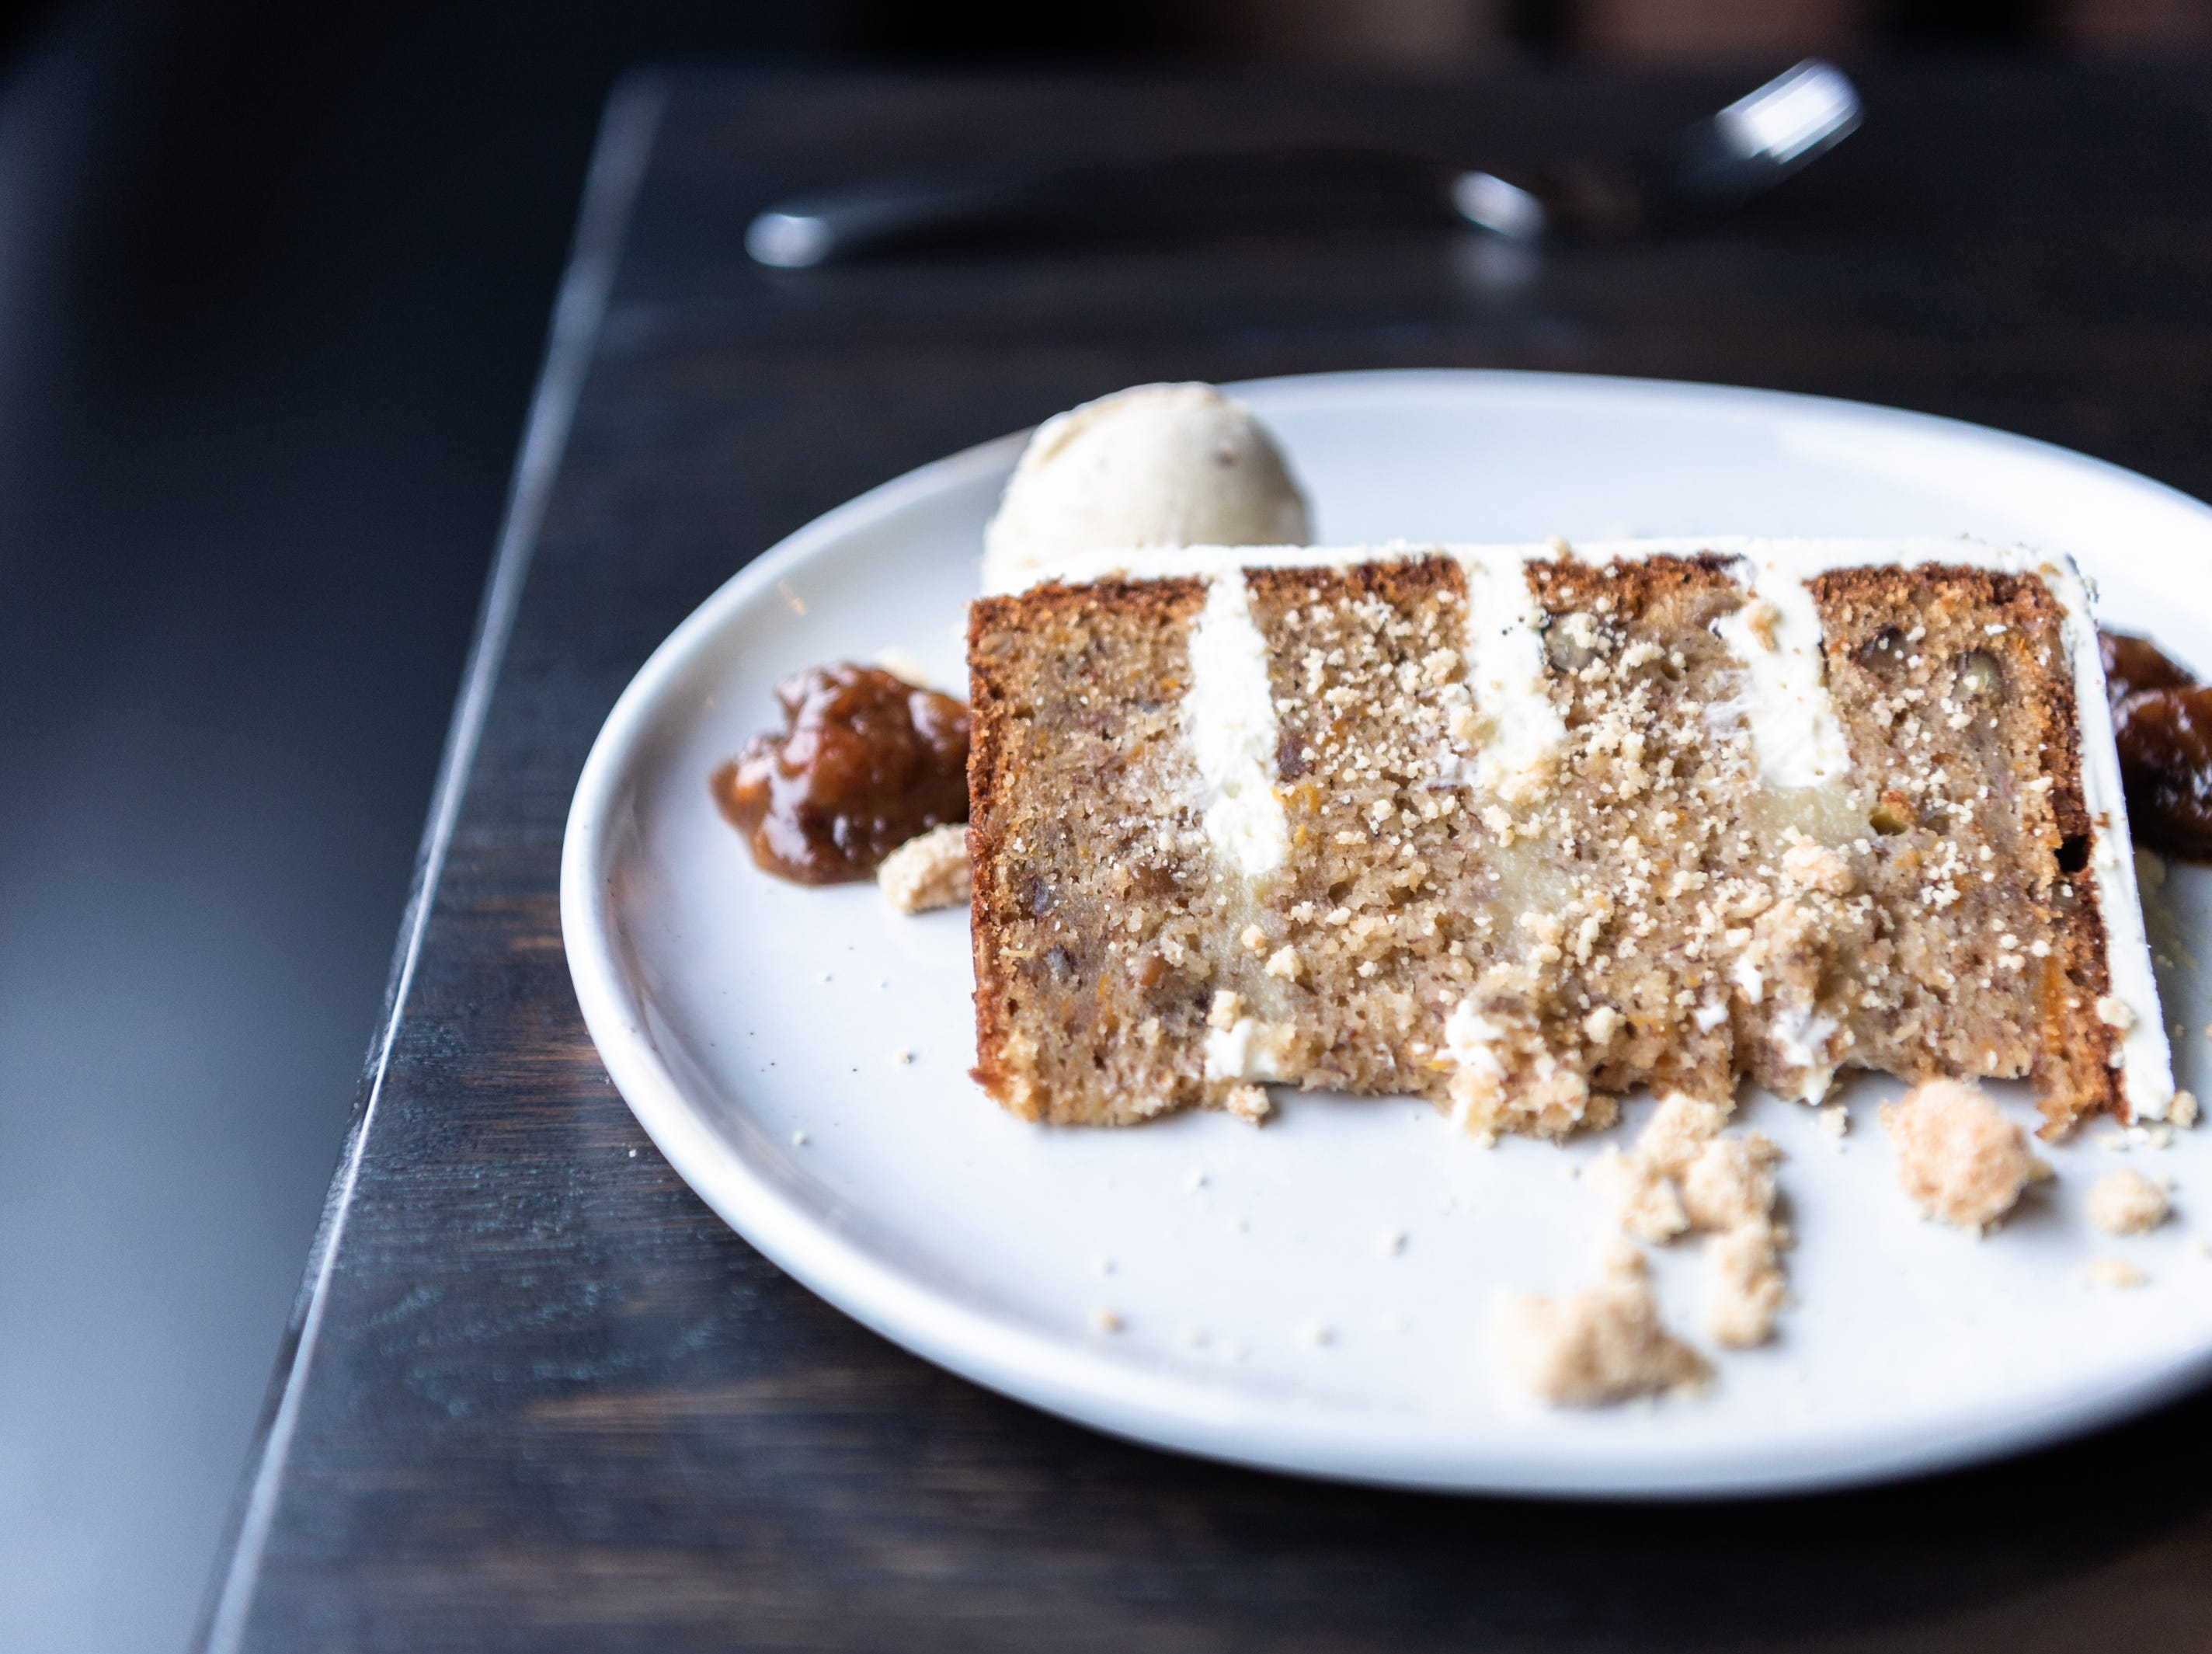 Hummingbird cake served with a scoop of sunflower ice cream offered at Benne on Eagle at the Foundry Hotel.